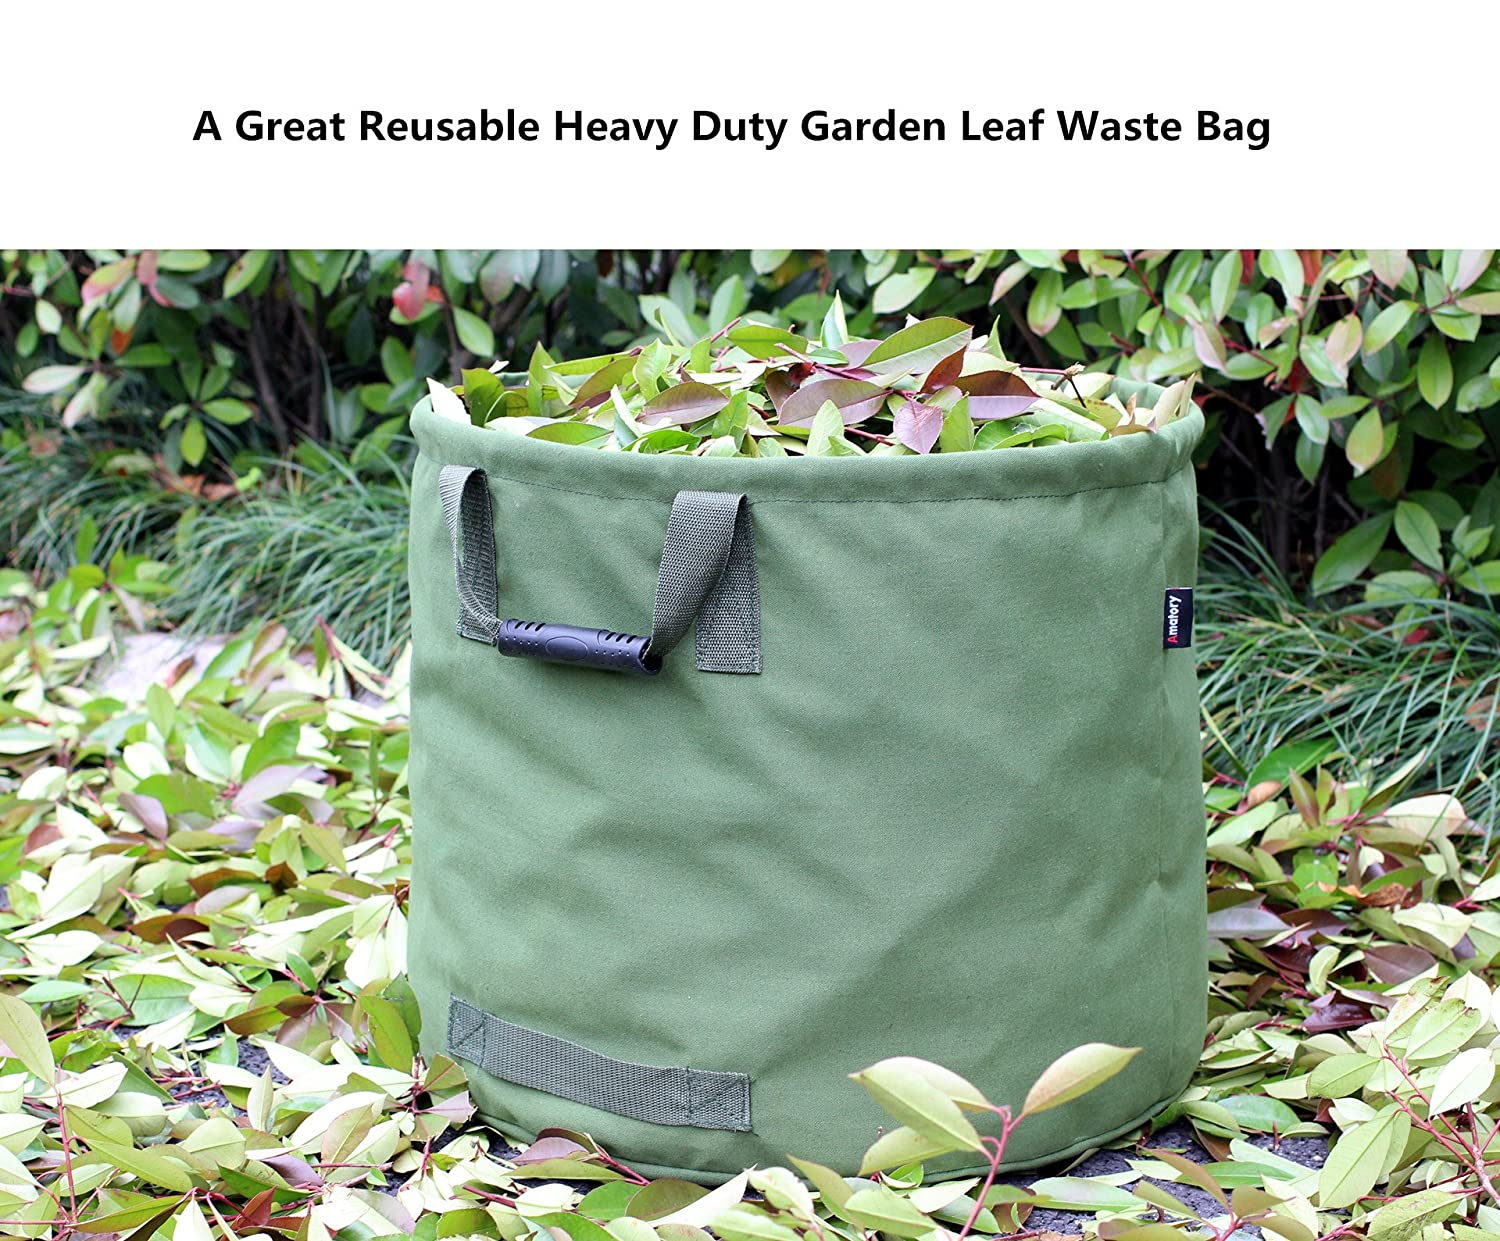 6c03cc45 Amazon.com : Amatory Garden Lawn Leaf Yard Waste Bag Container Tote  Gardening Trash Reusable Heavy Duty Military Canvas Fabric 33 Gallon  (Green) : Garden & ...